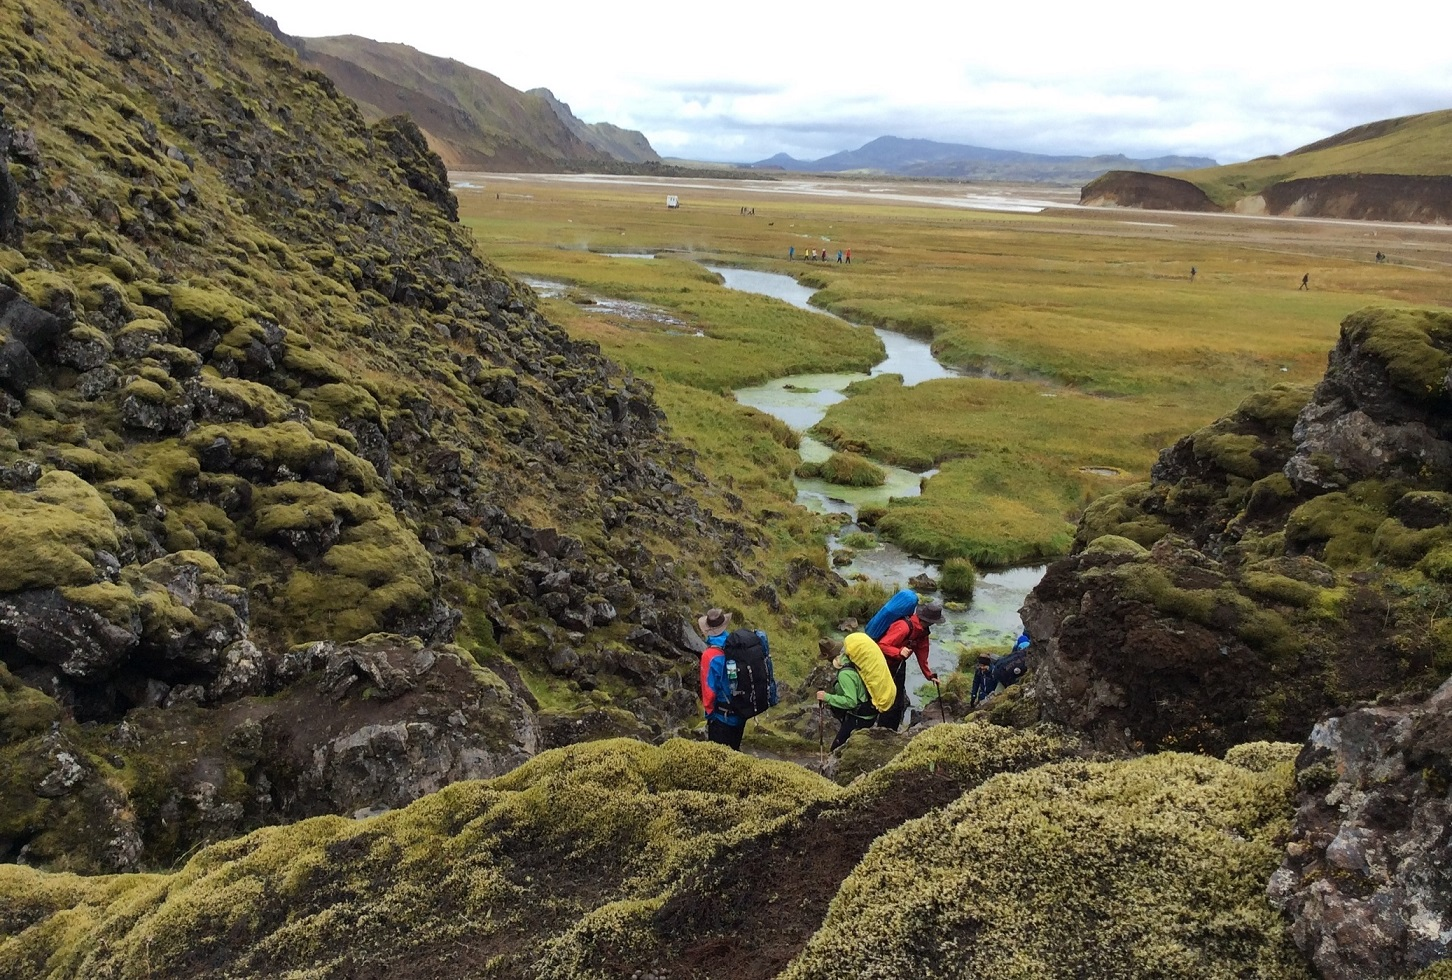 Guided 5 Day Hiking Tour of Iceland's Laugavegur Trail with Camping in Mountain Hunts - day 2